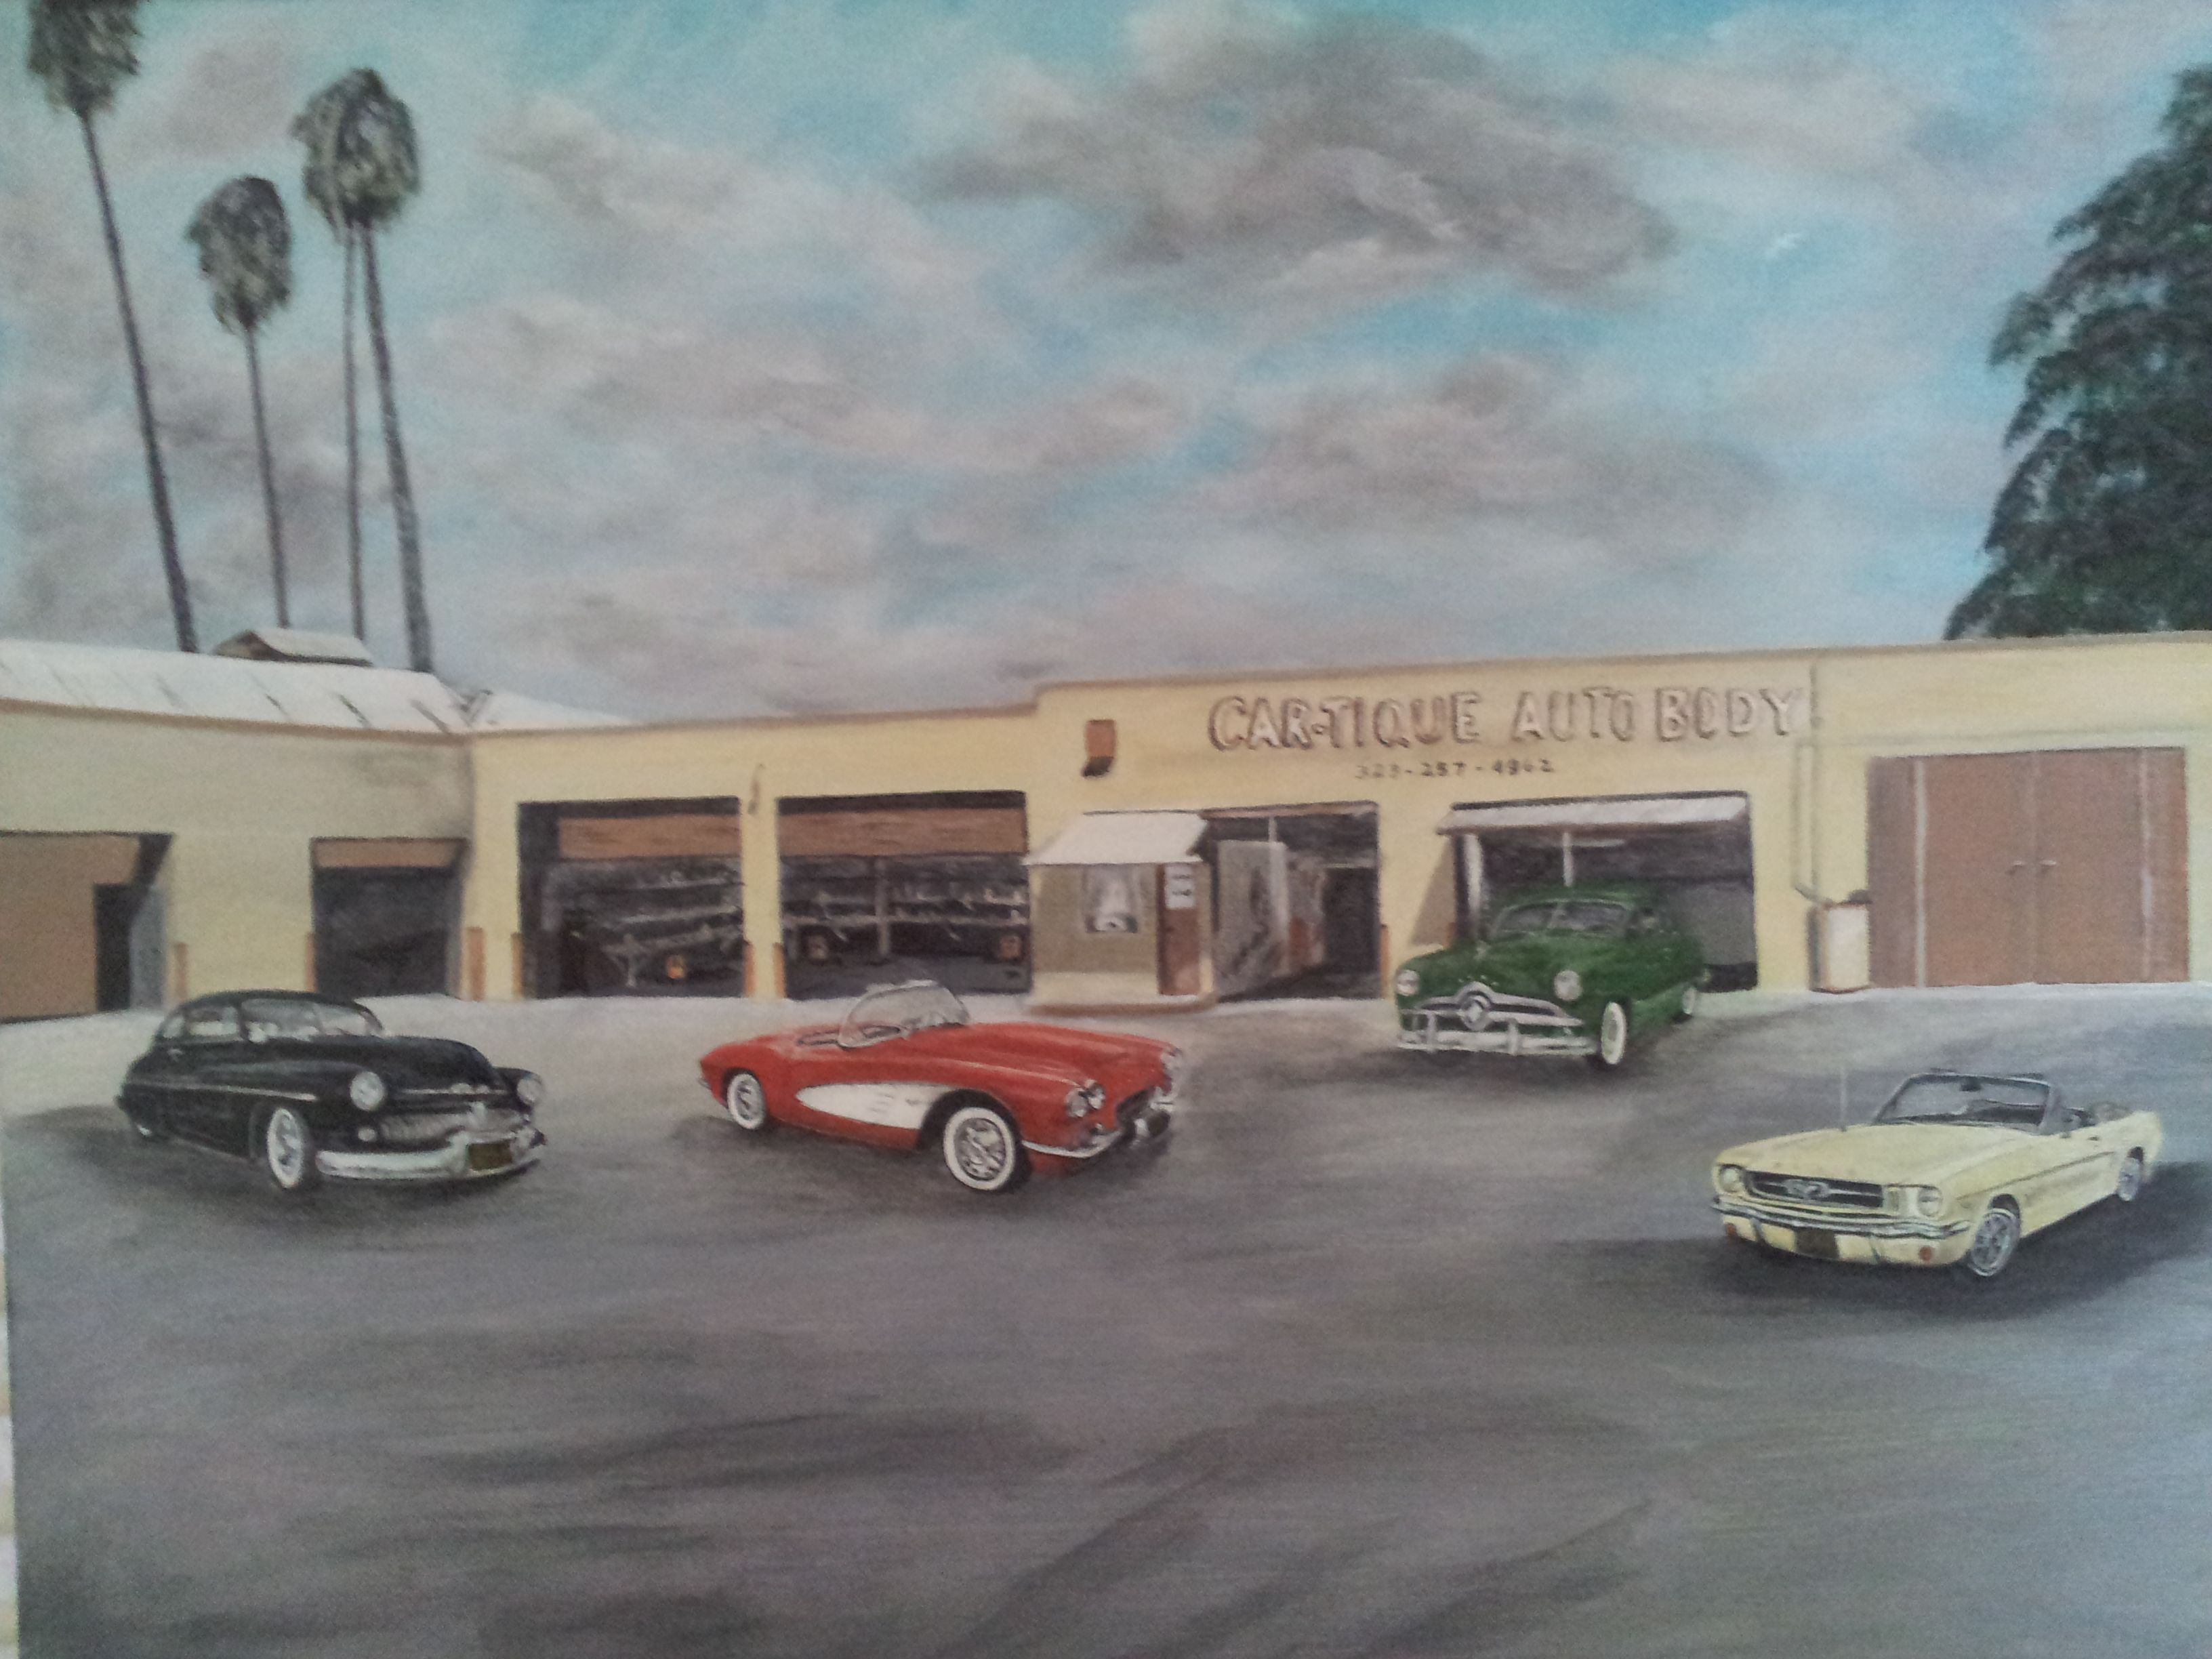 Sonny & Bev's Auto Body Shop with four of their classic cars.